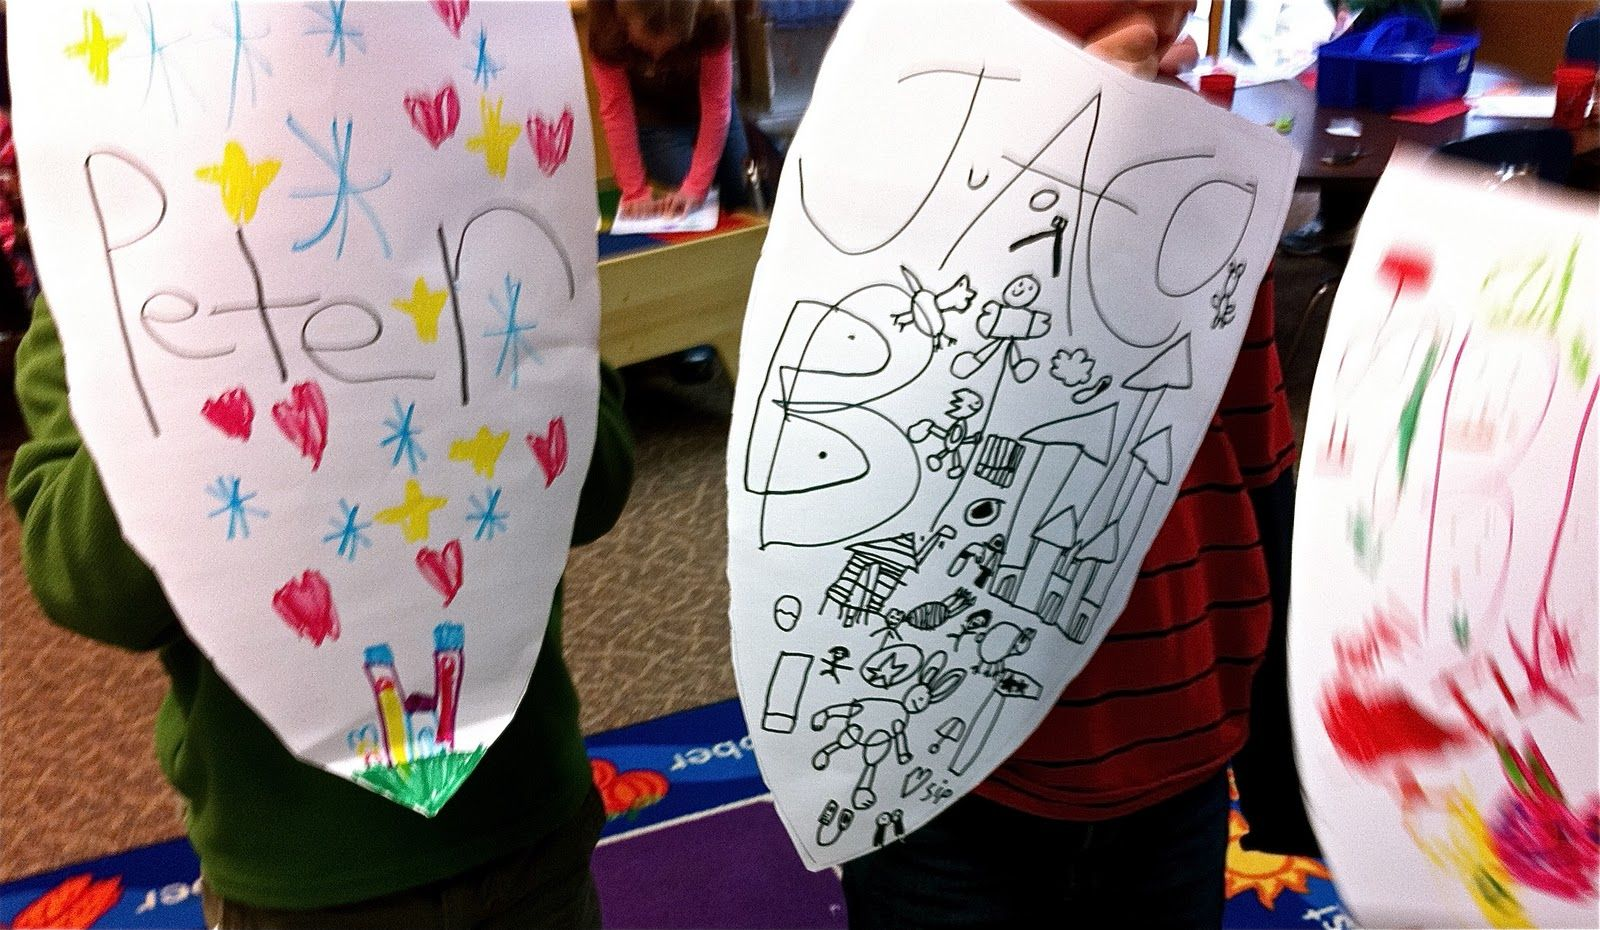 I Asked The Children To Write Their Name On The Shield In